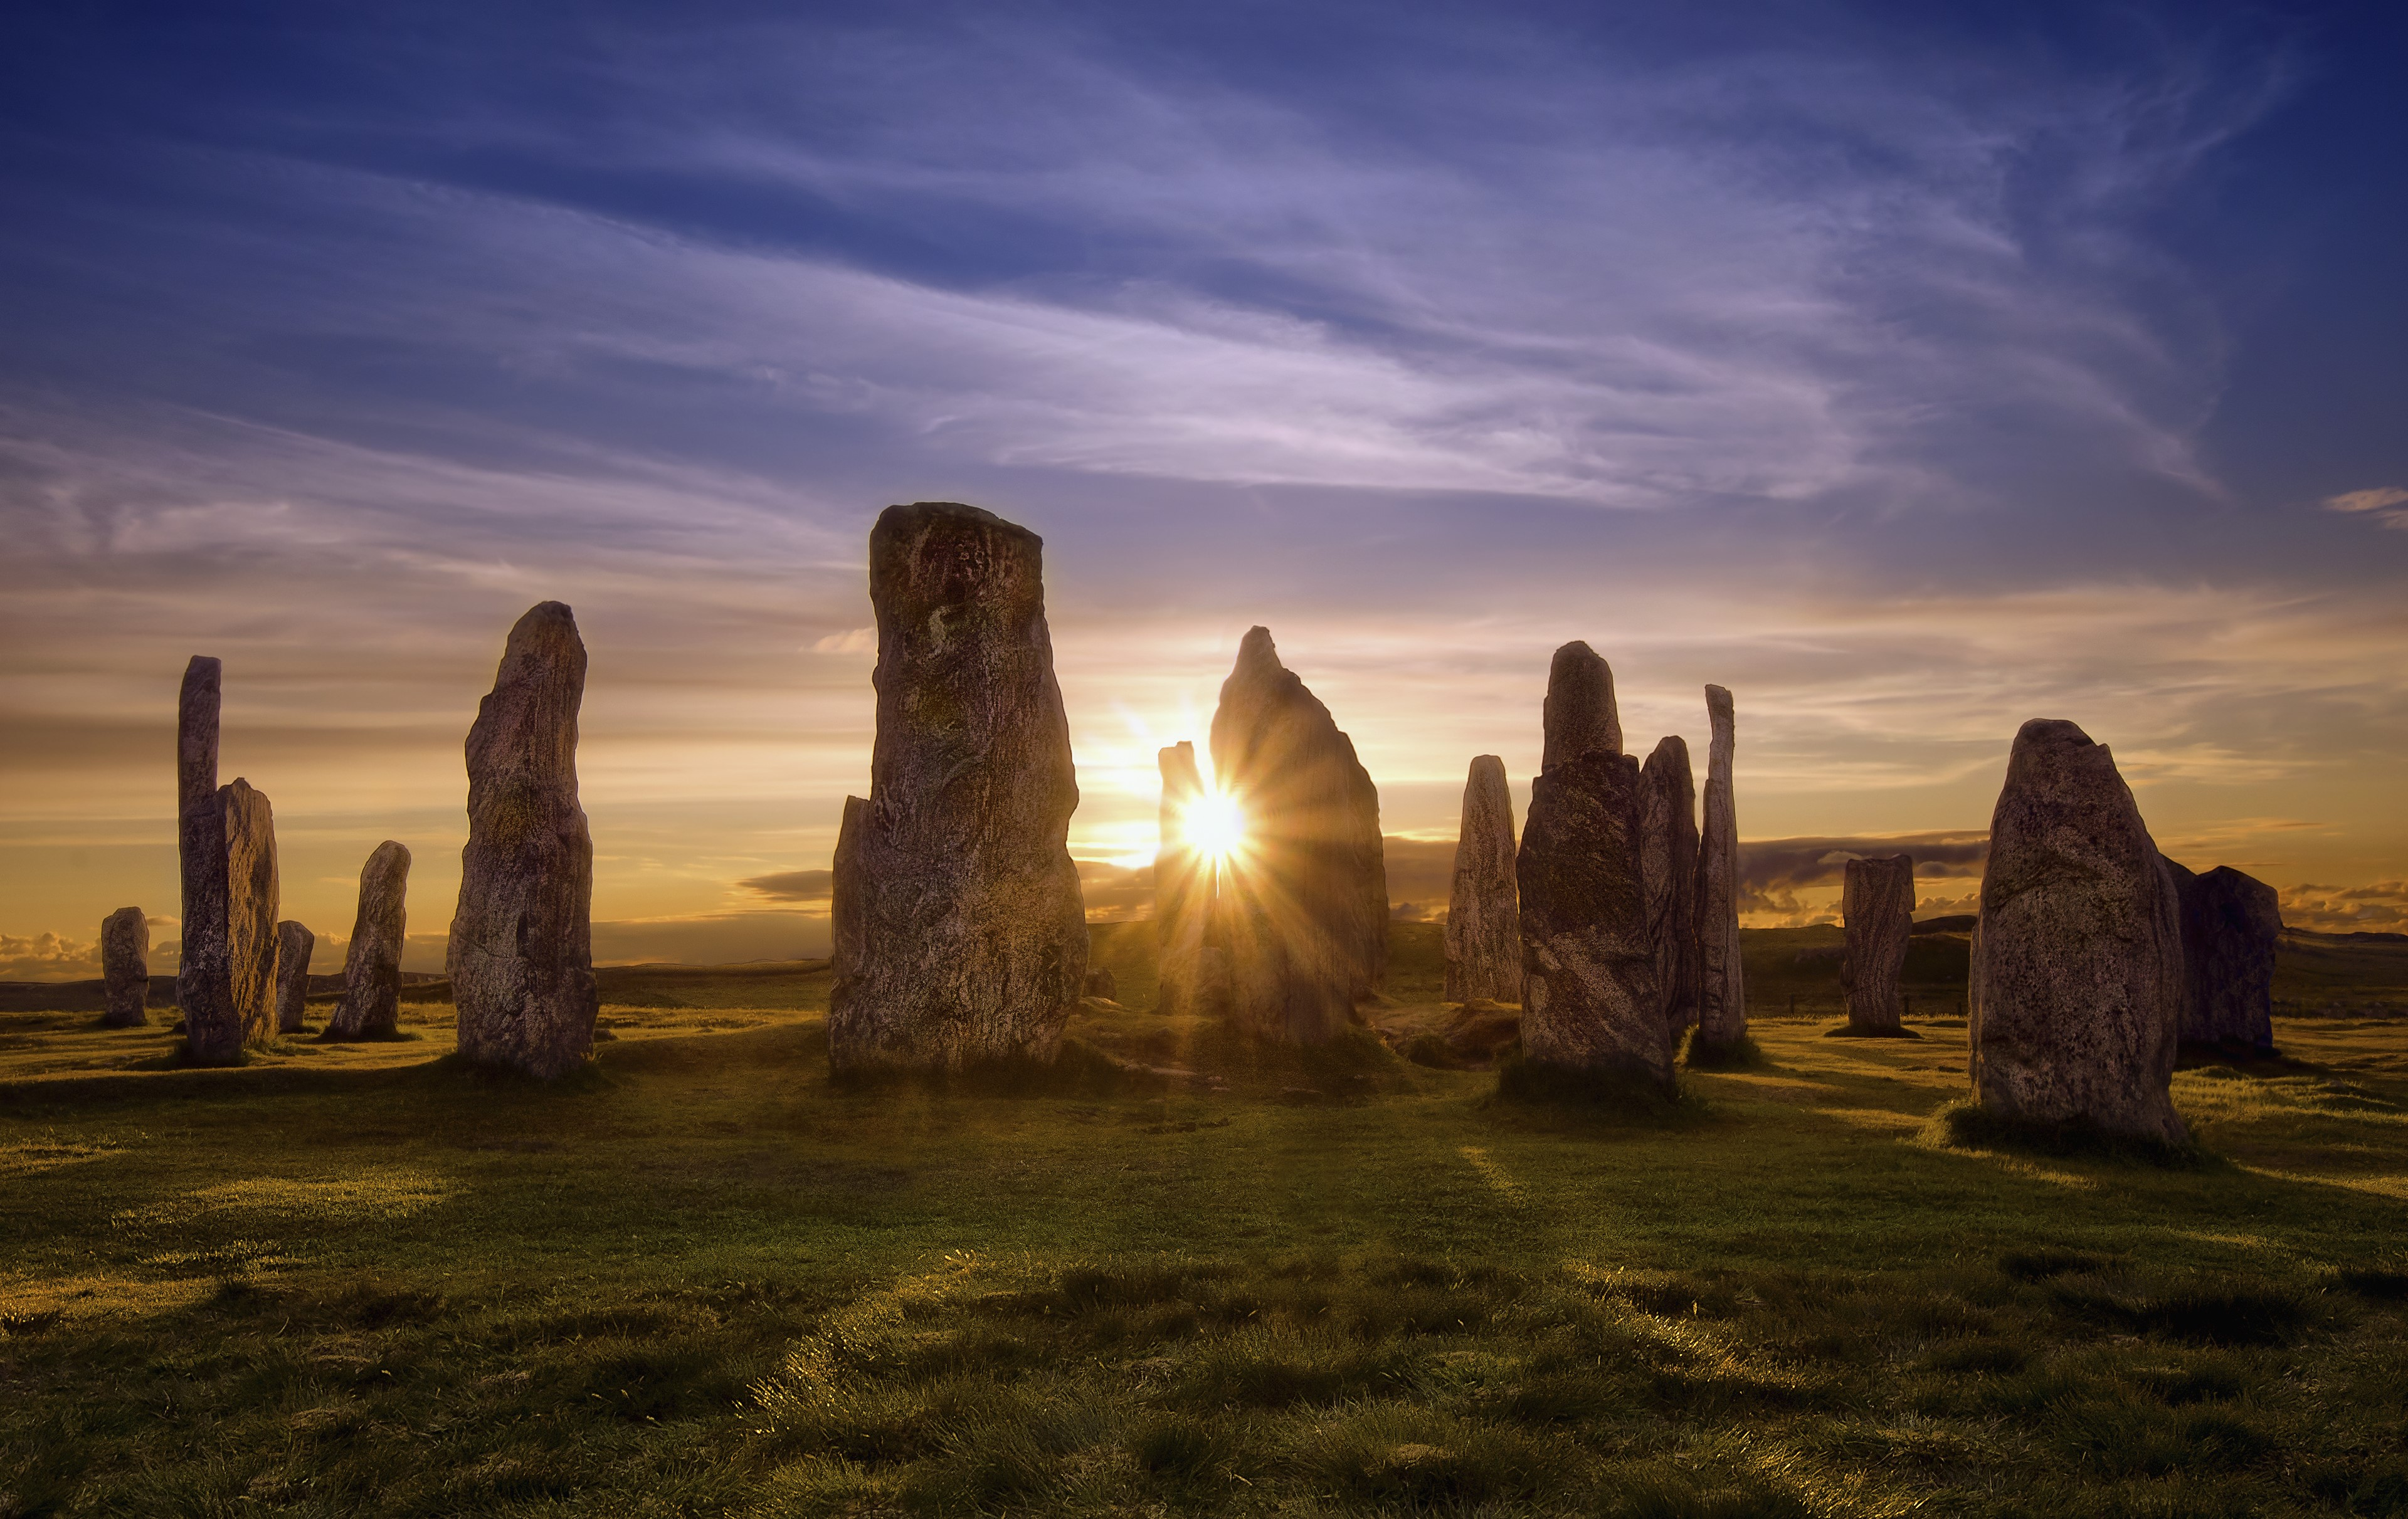 Callanish Stones at Sunset